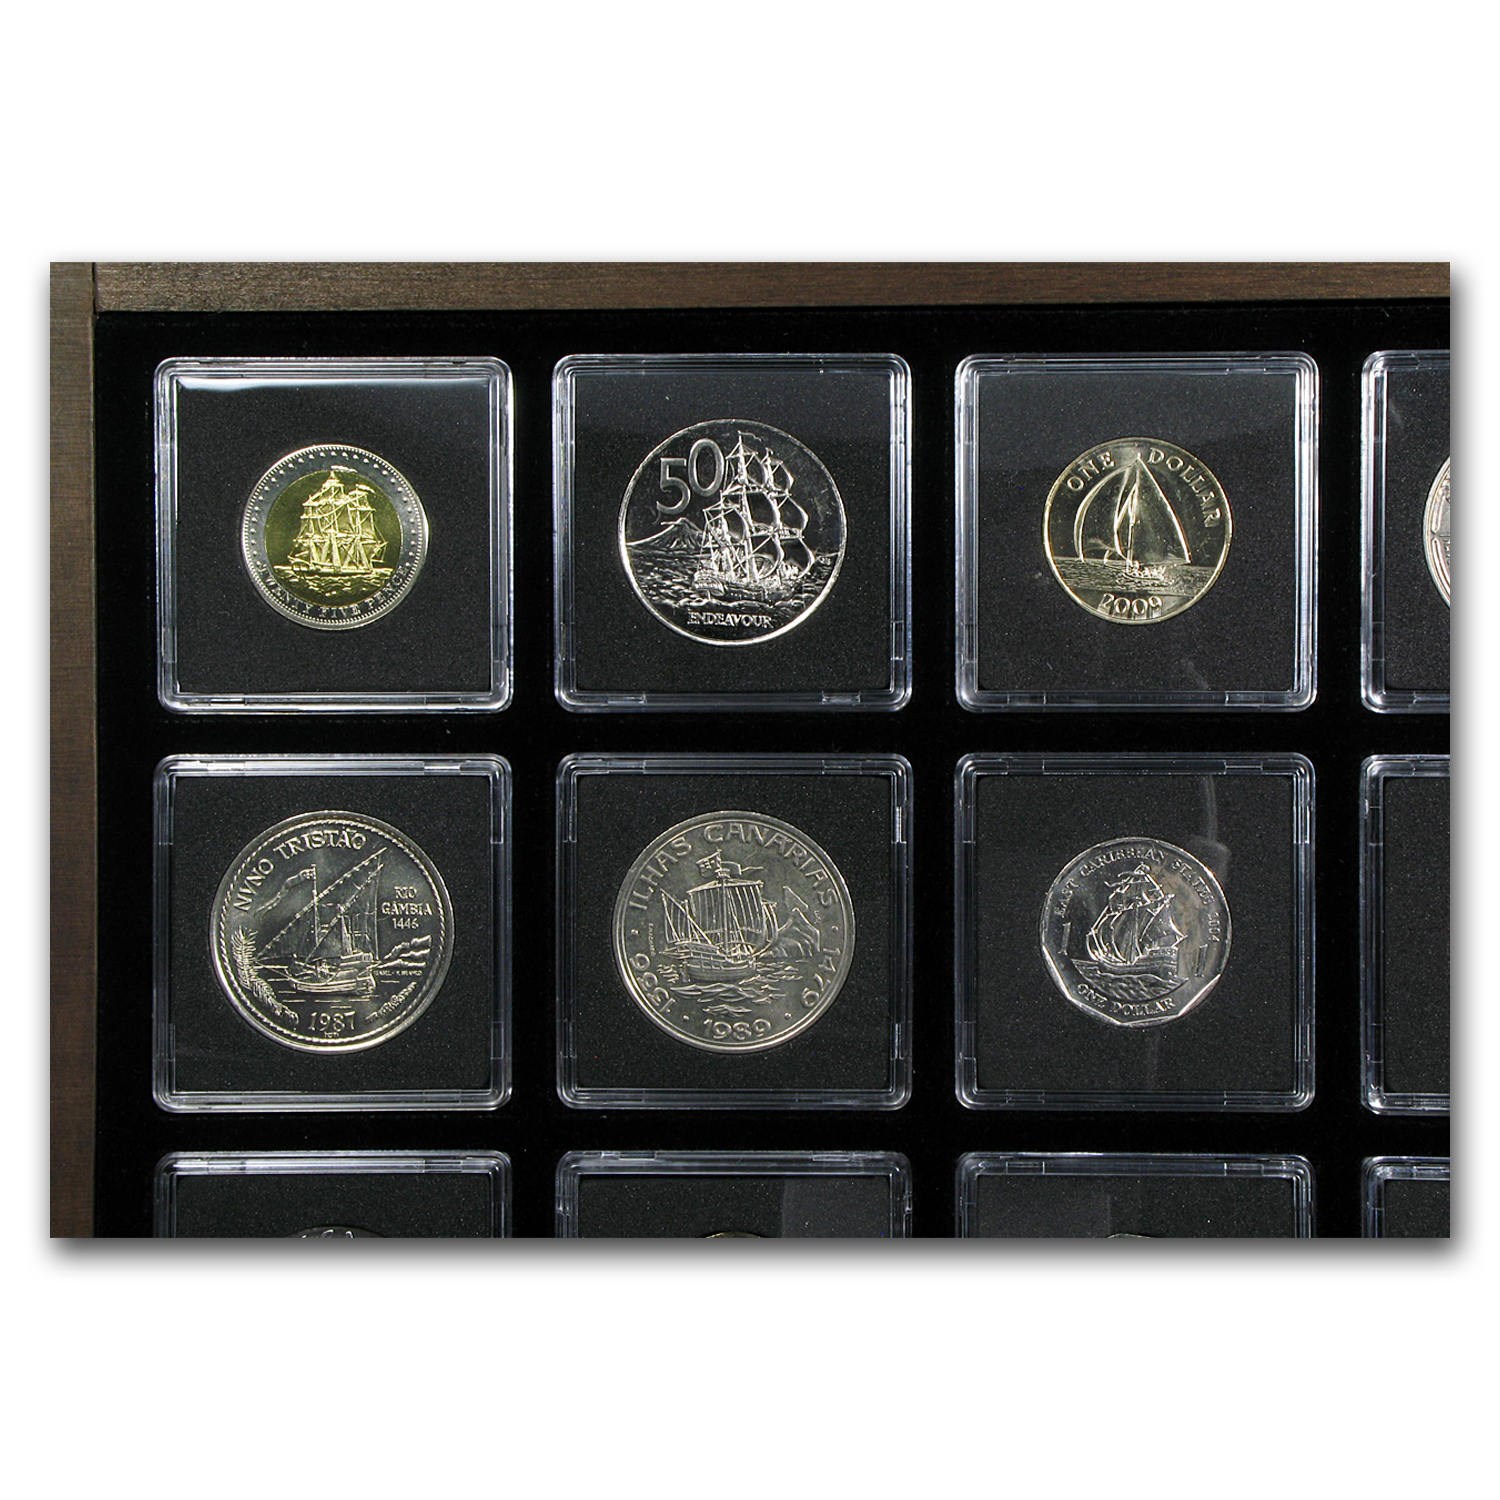 World Ship Collection - 20 Coins From Around the World